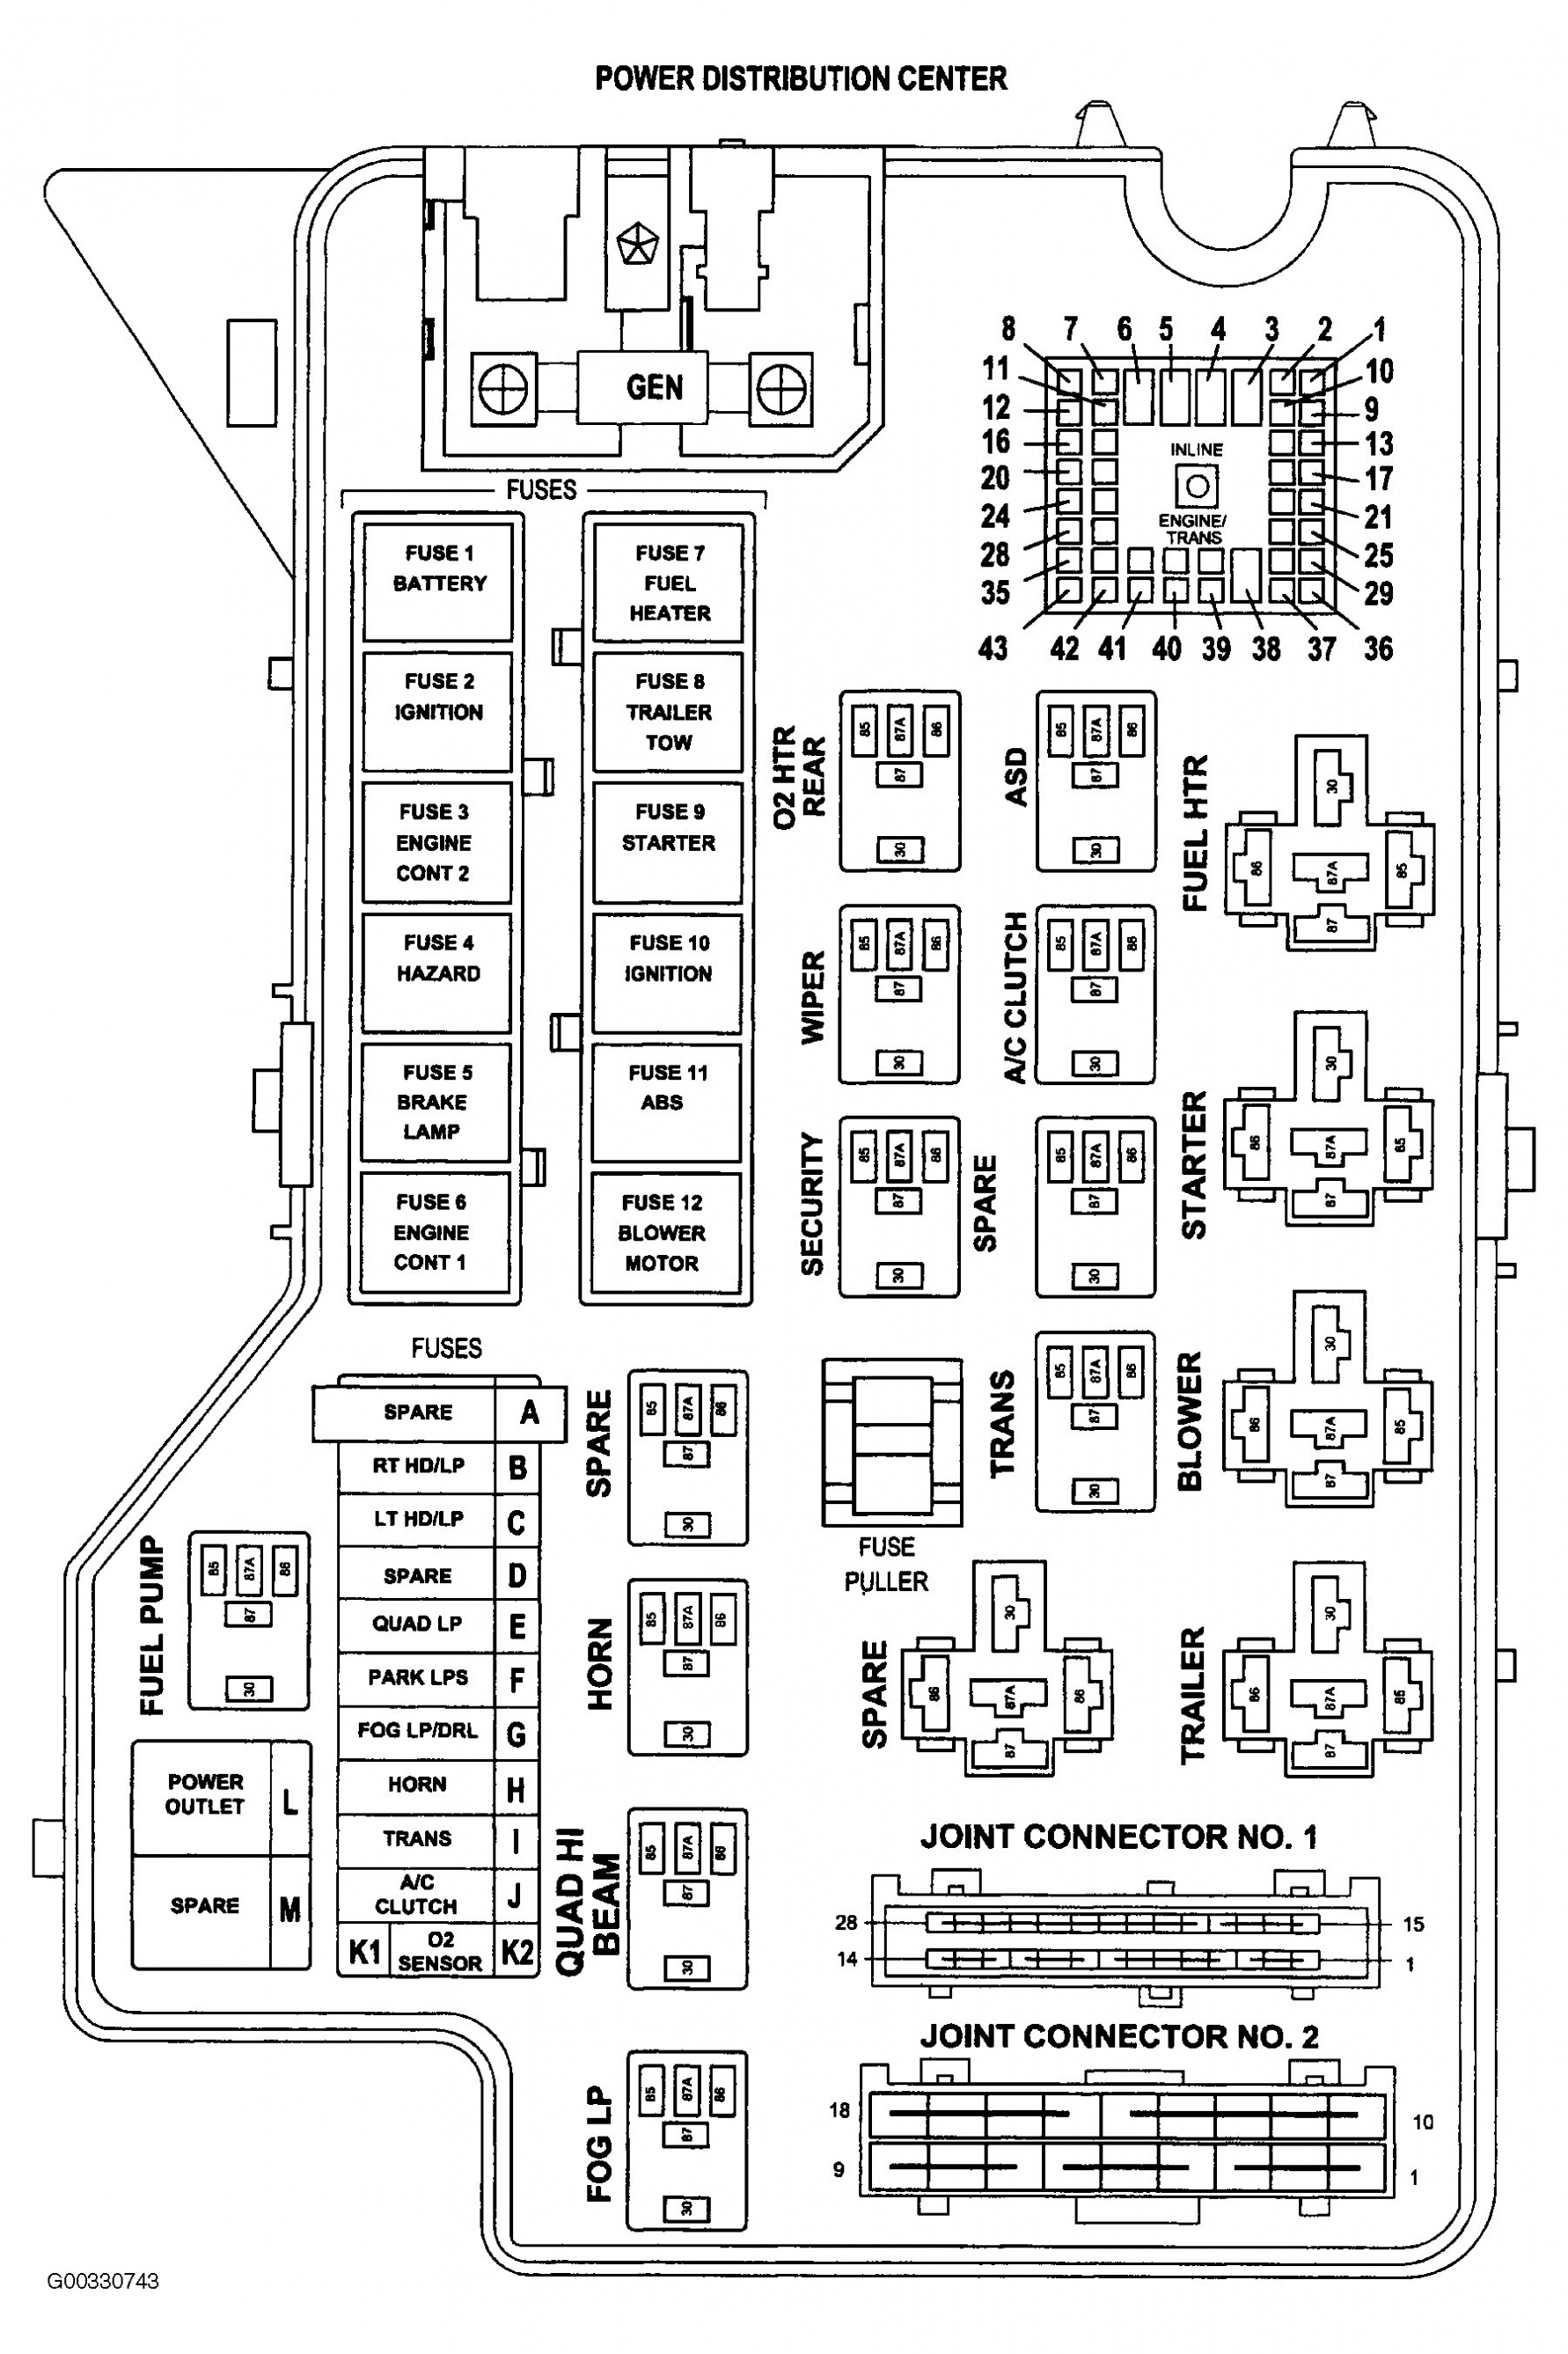 Wiring Diagram For 2000 Dodge Ram 1500 from i2.wp.com